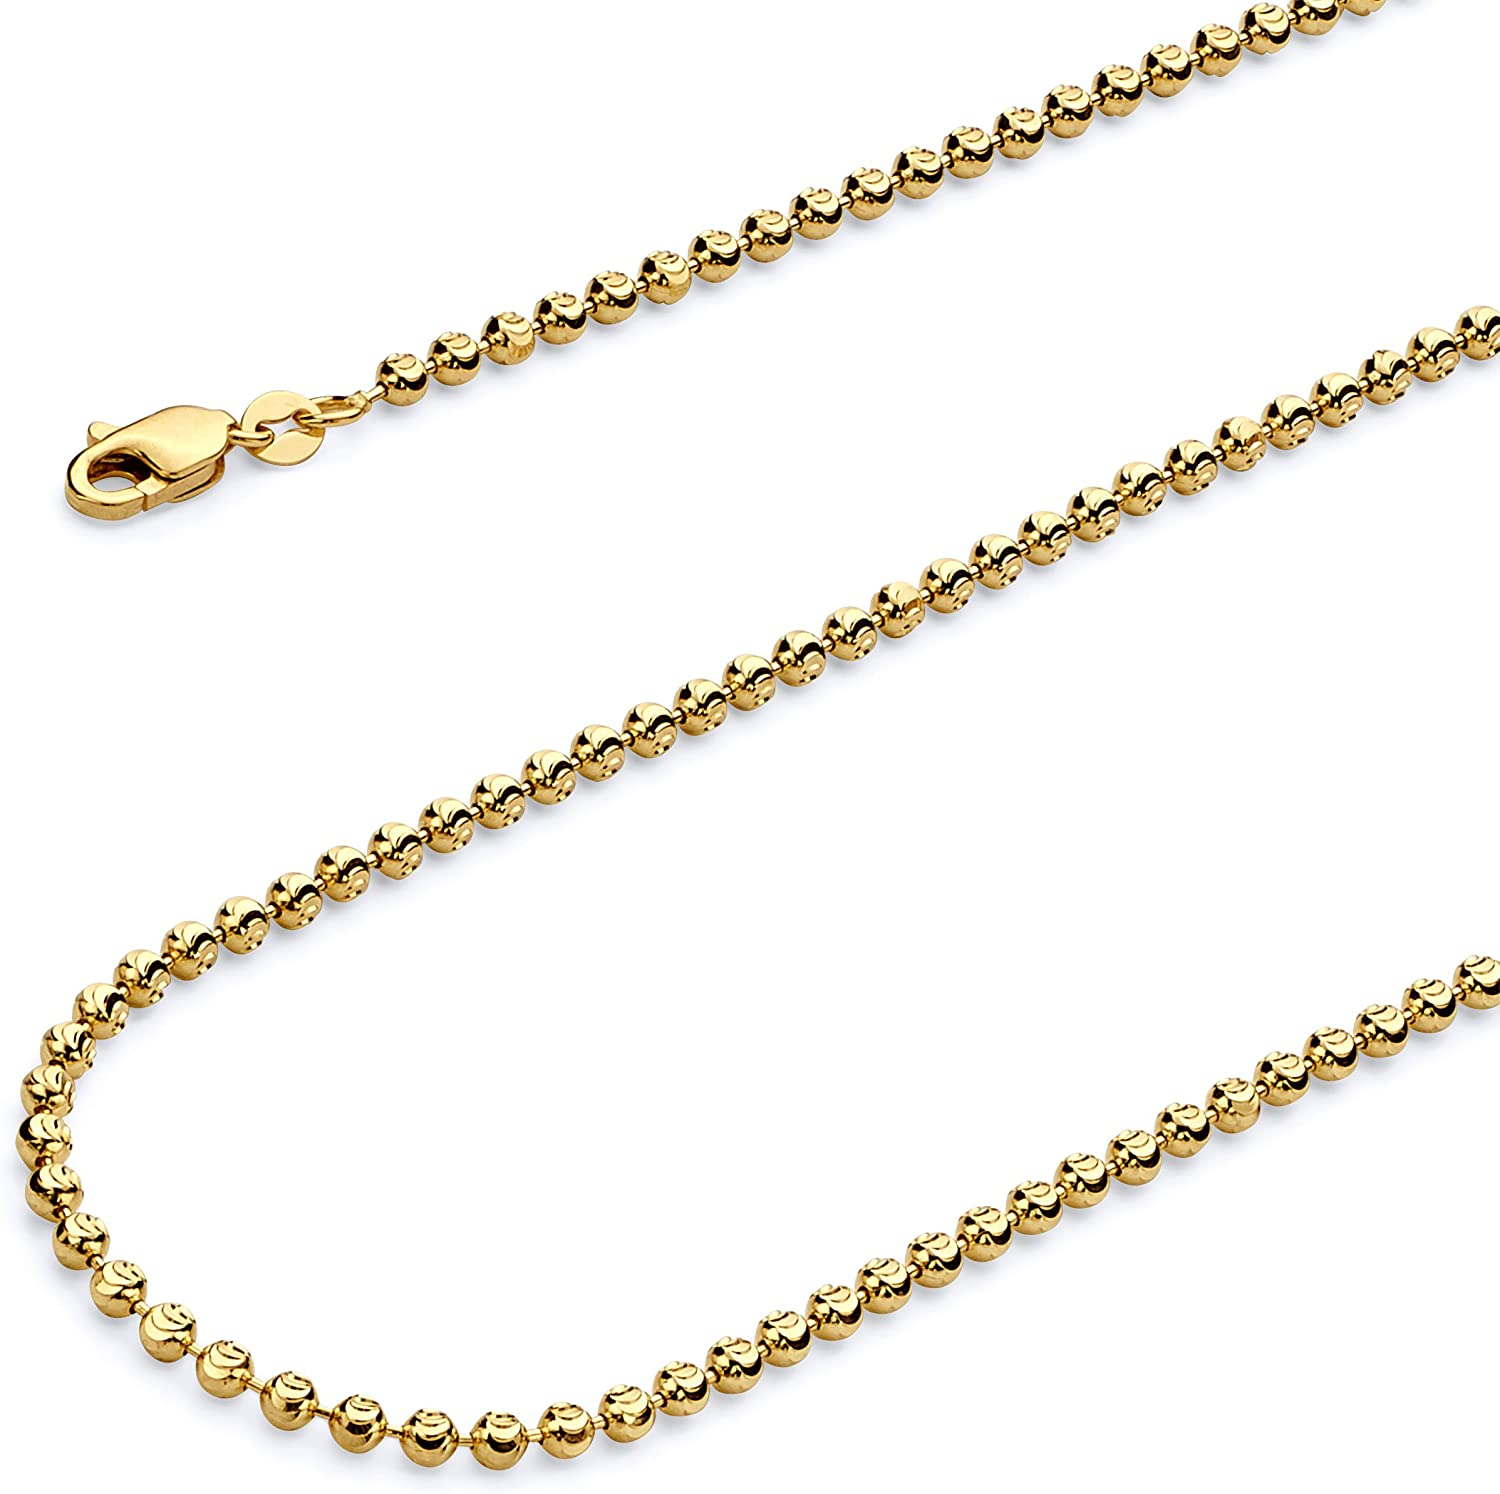 Wellingsale 14k Yellow Gold Polished 2.5mm Heart ID Figaro Bracelet with Lobster Claw Clasp 6